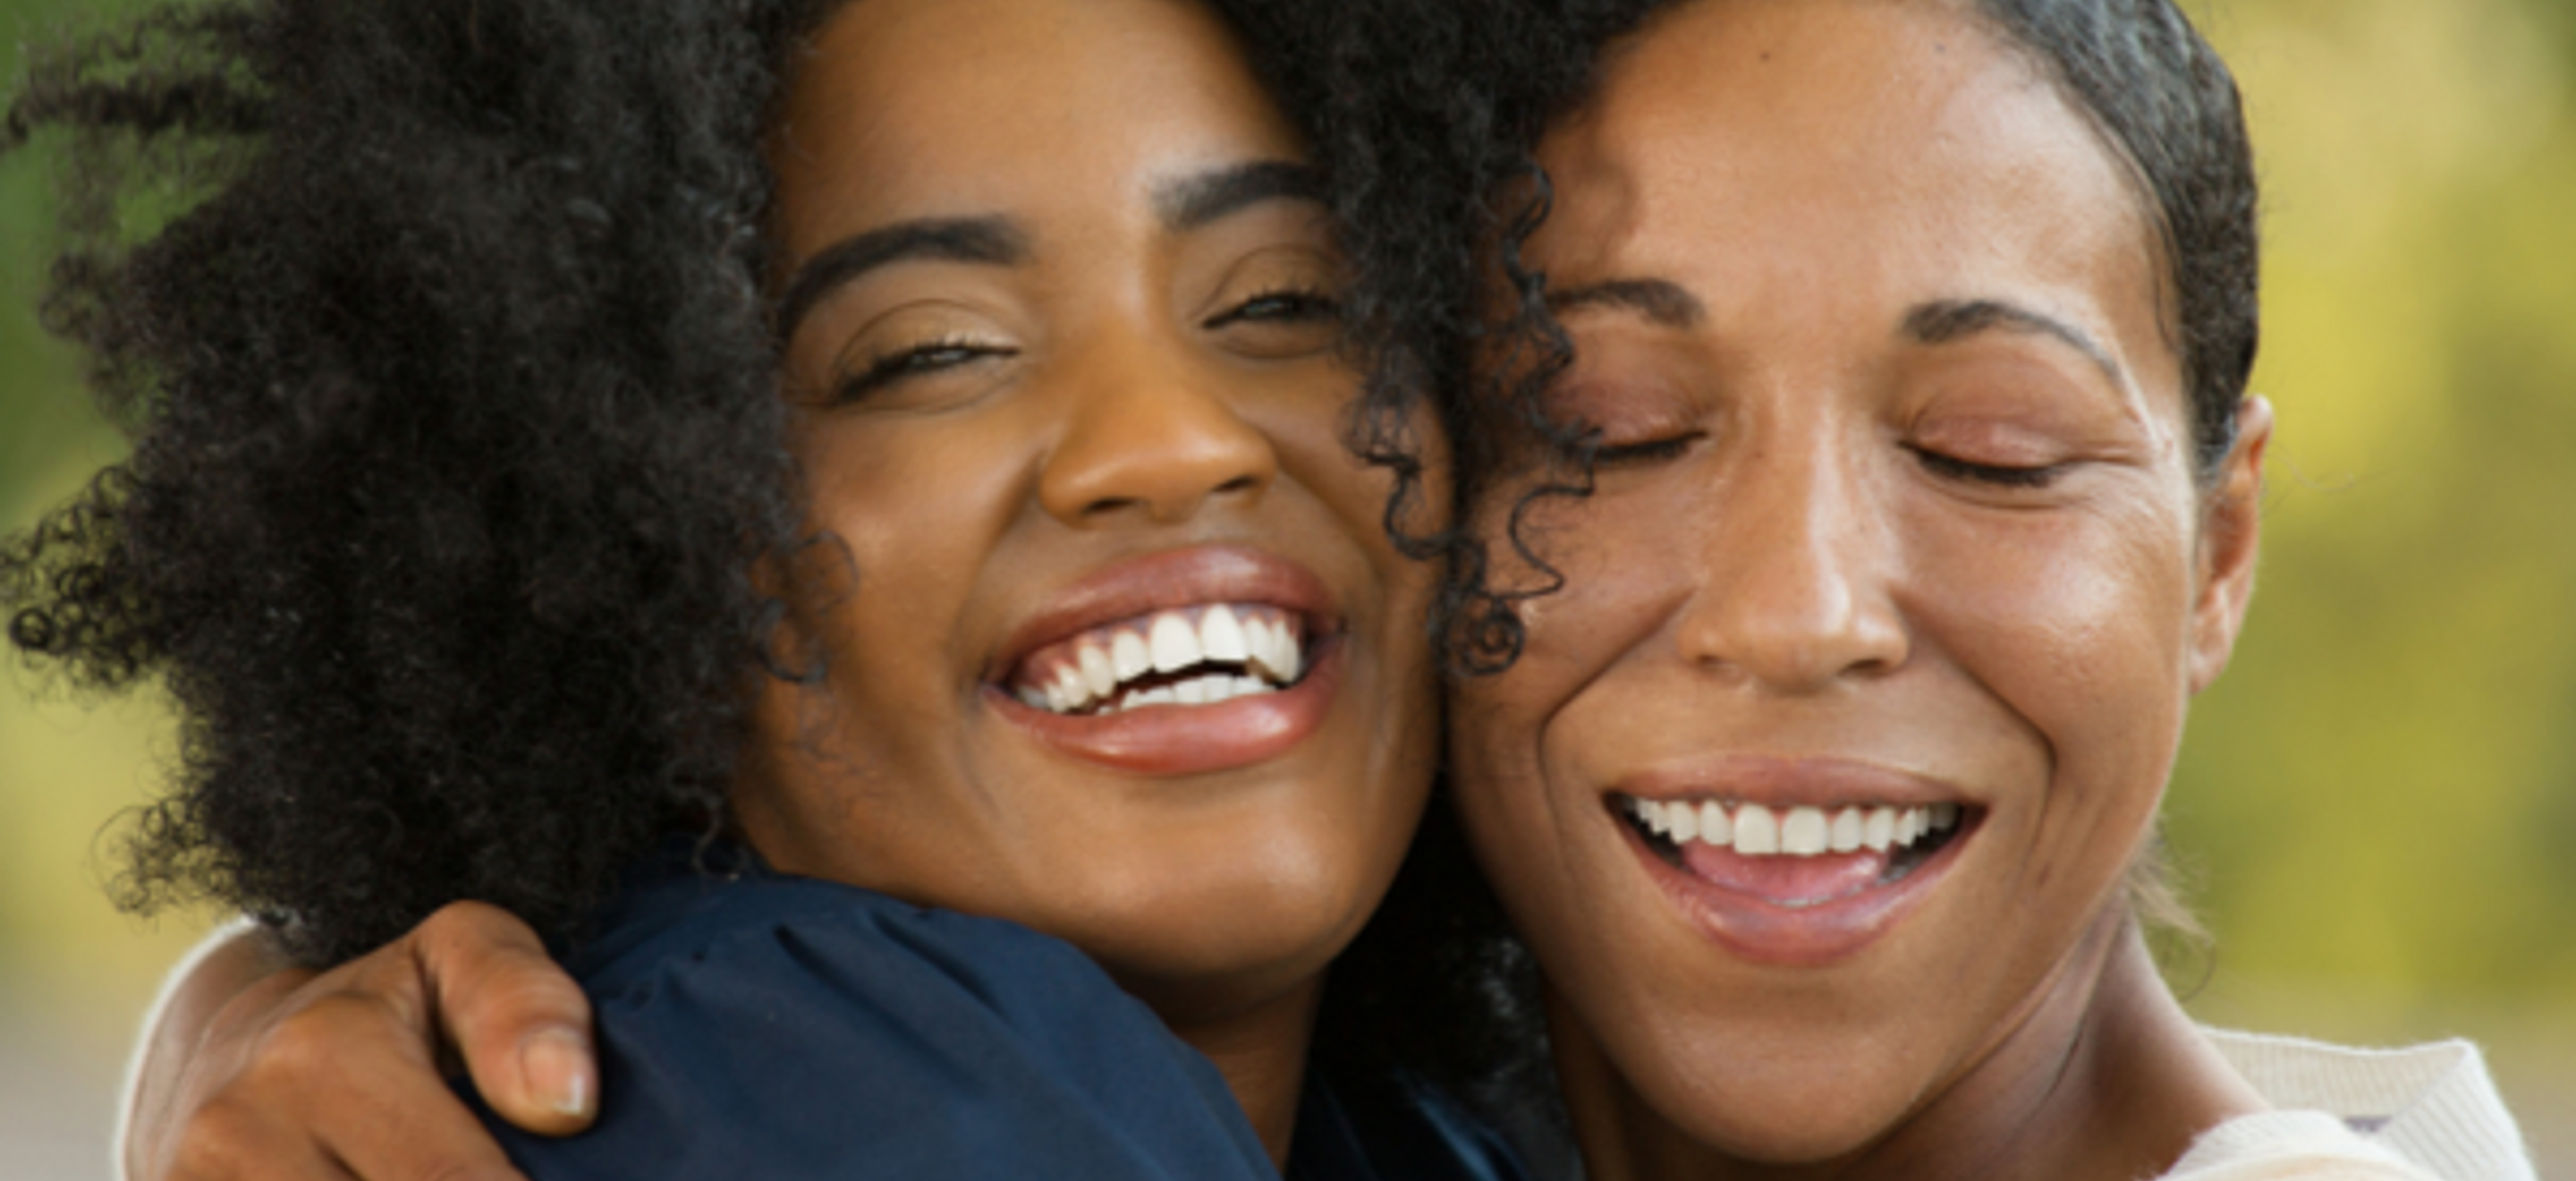 Two Black women embrace cheek to cheek. They both smile. The woman on the left looks slightly past the camera, the woman on the right has her eyes closed.